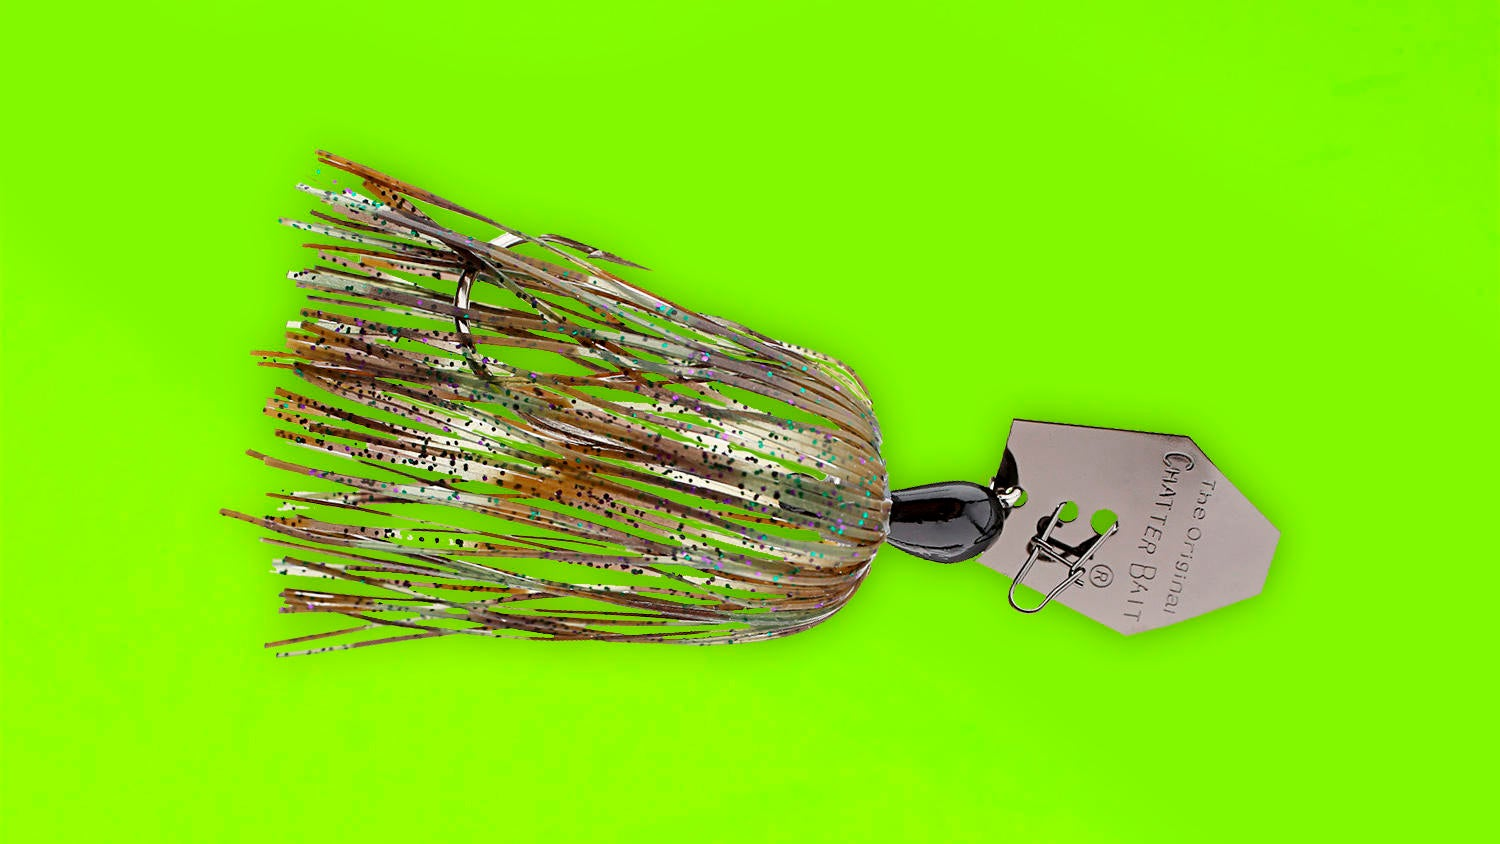 The 2019 List of the 25 Most Influential Bass Fishing Lures